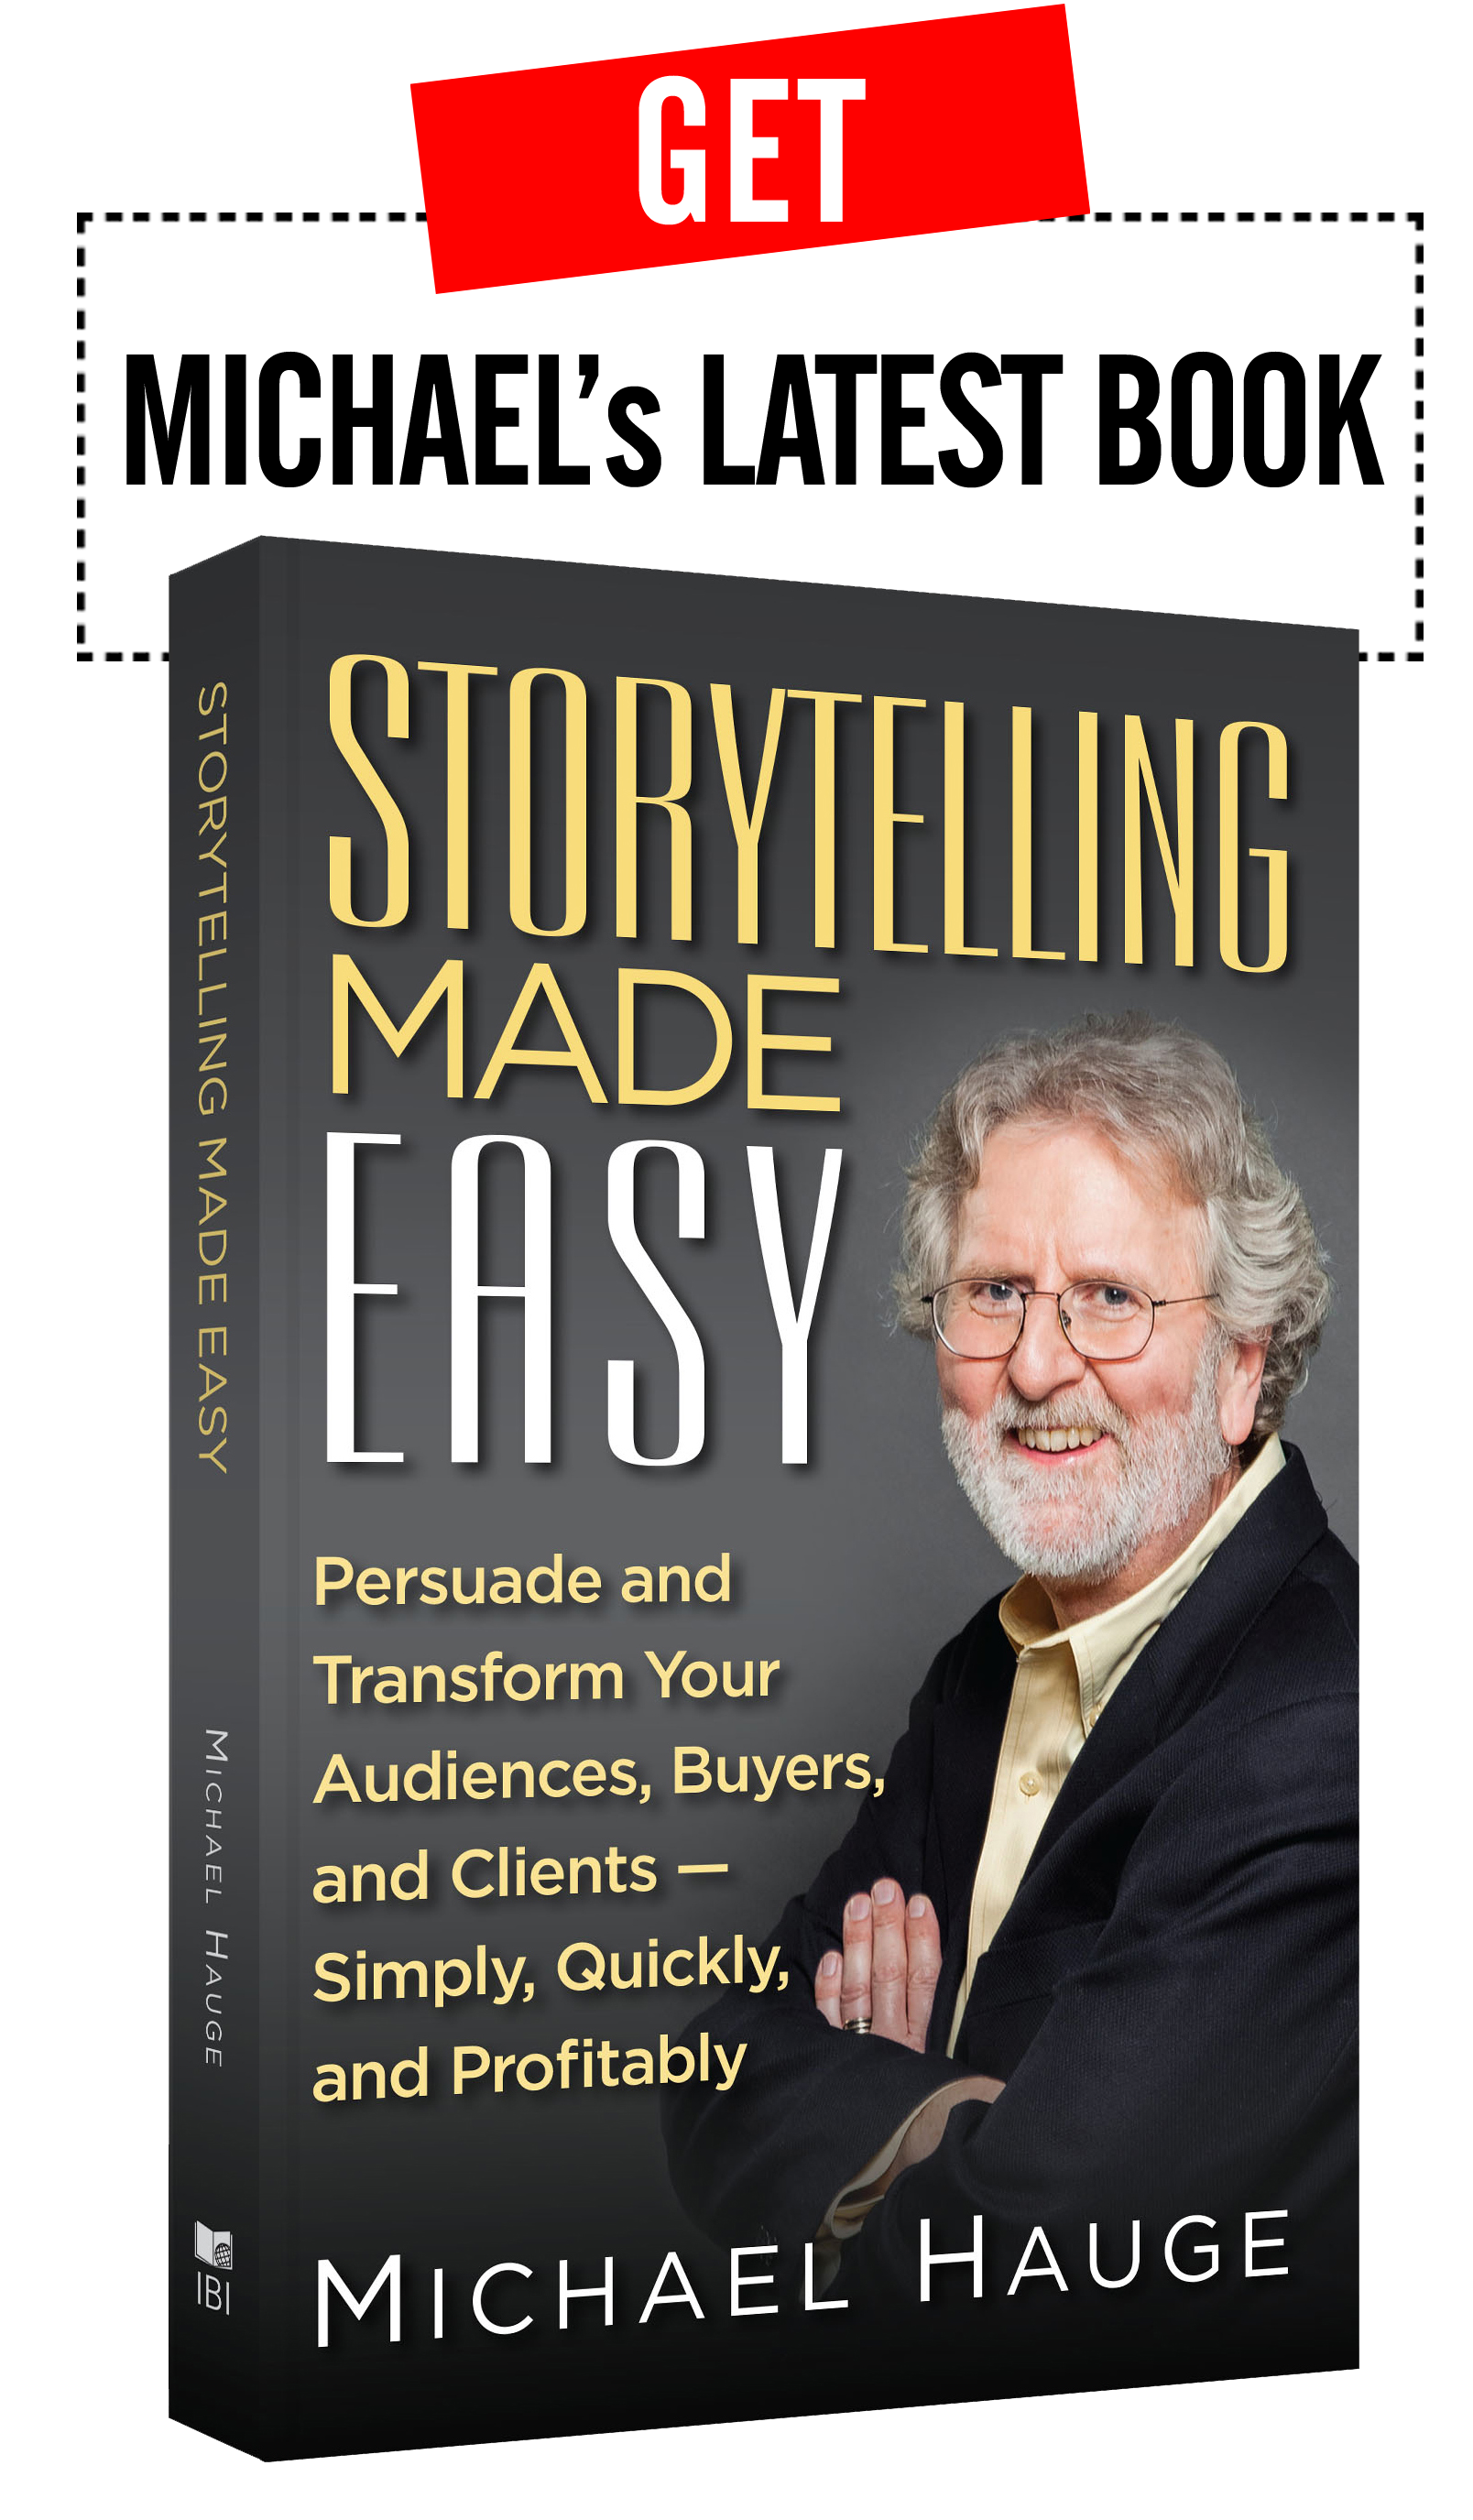 Cover of Storytelling made Easy by Michael Hauge